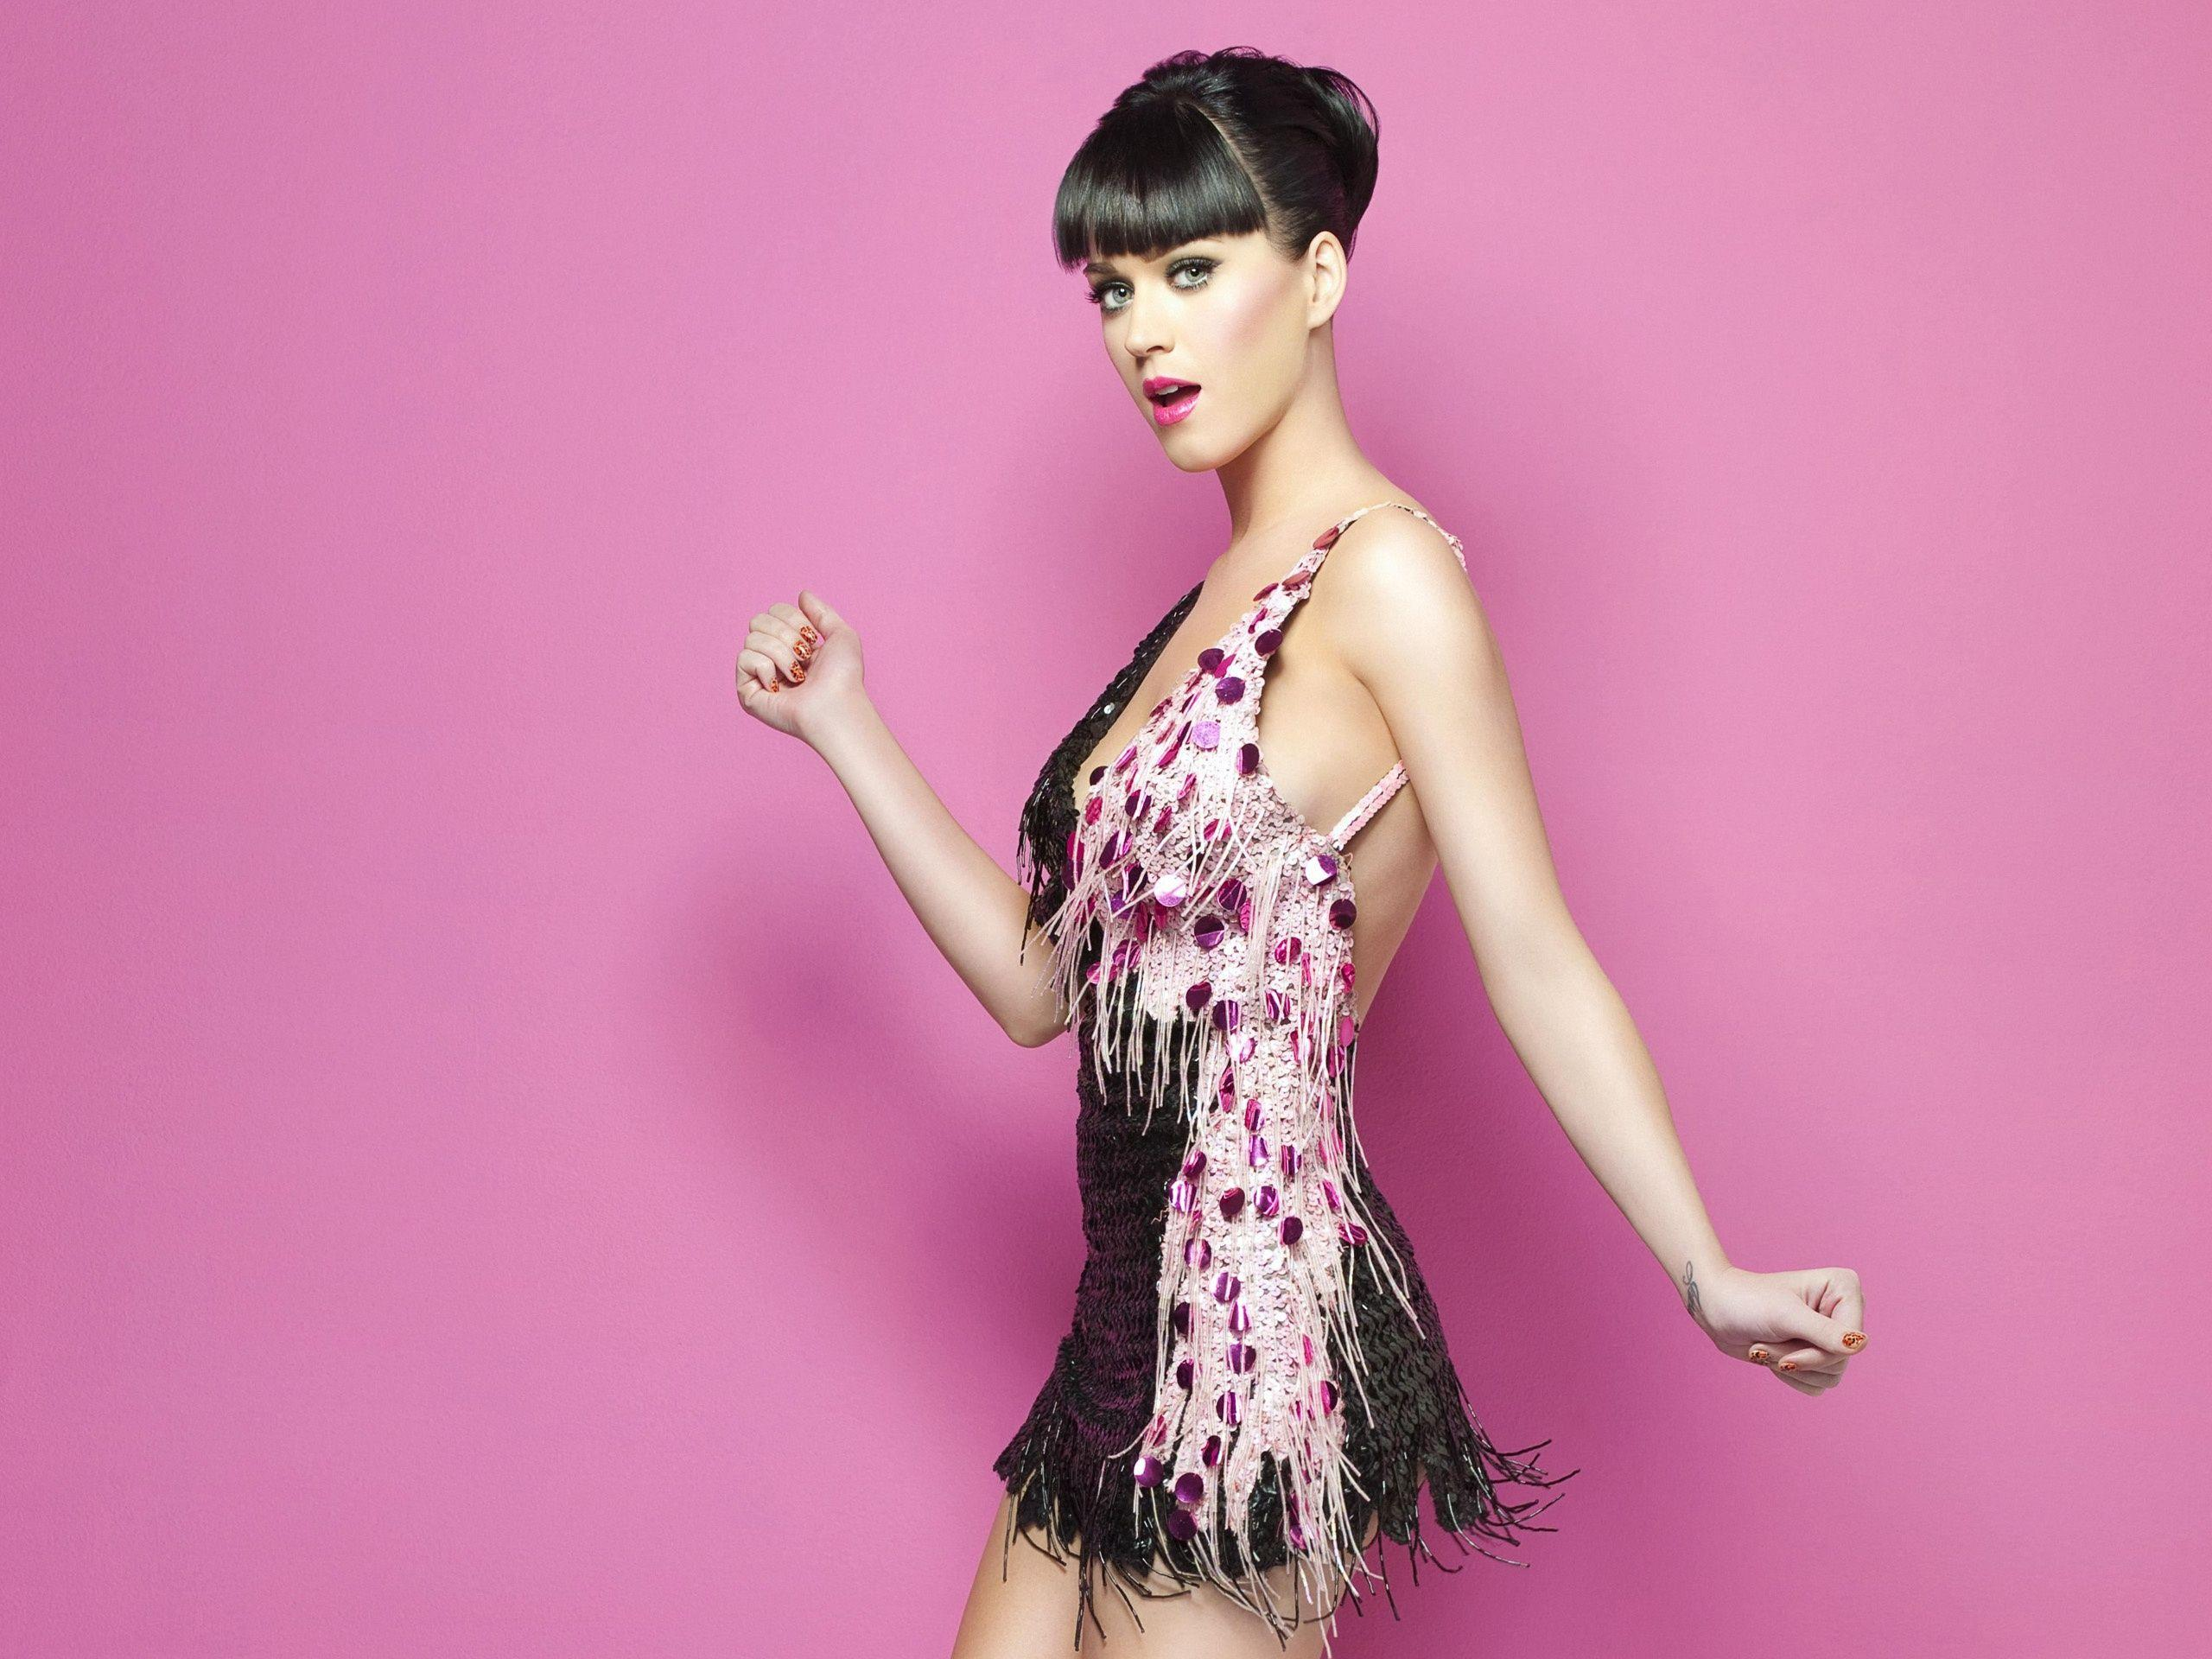 Katy Perry Wallpaper pink hot cute